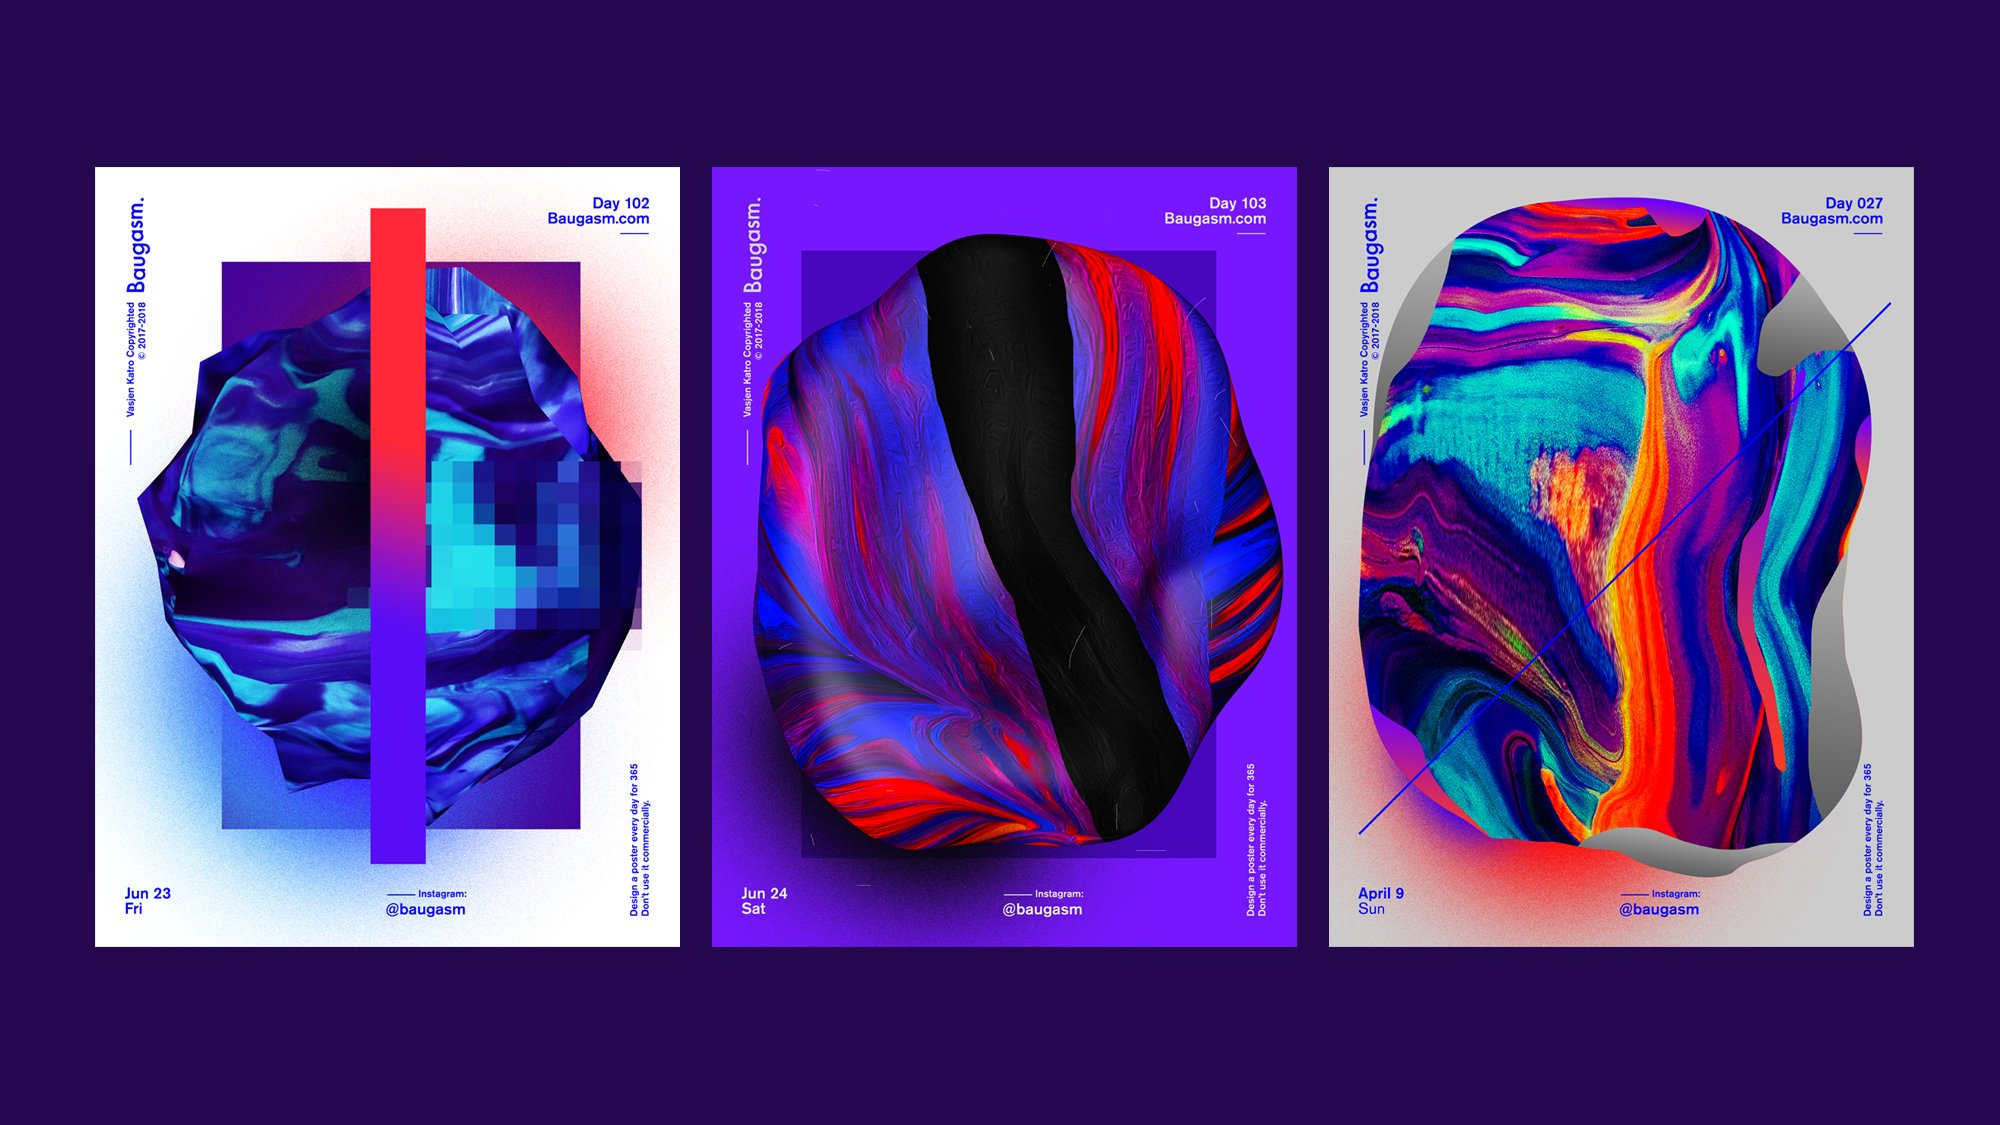 Baugasm™ Series #8 - Design Abstract Textures and Poster